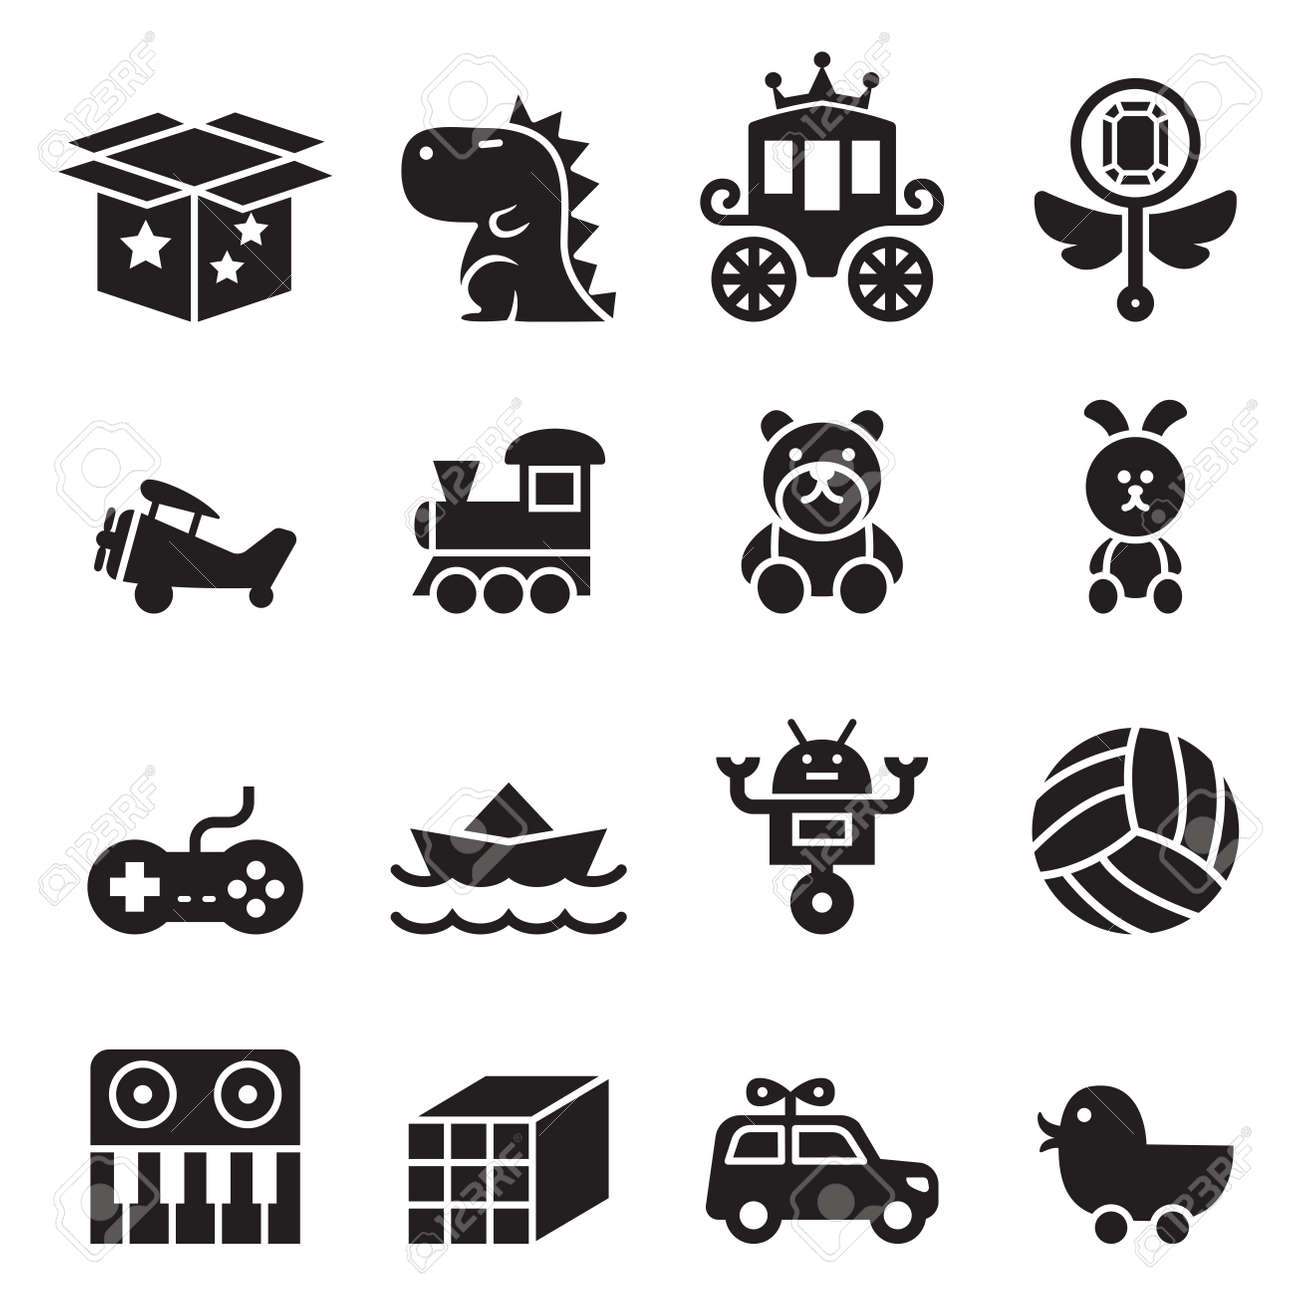 toy icon set royalty free cliparts vectors and stock illustration